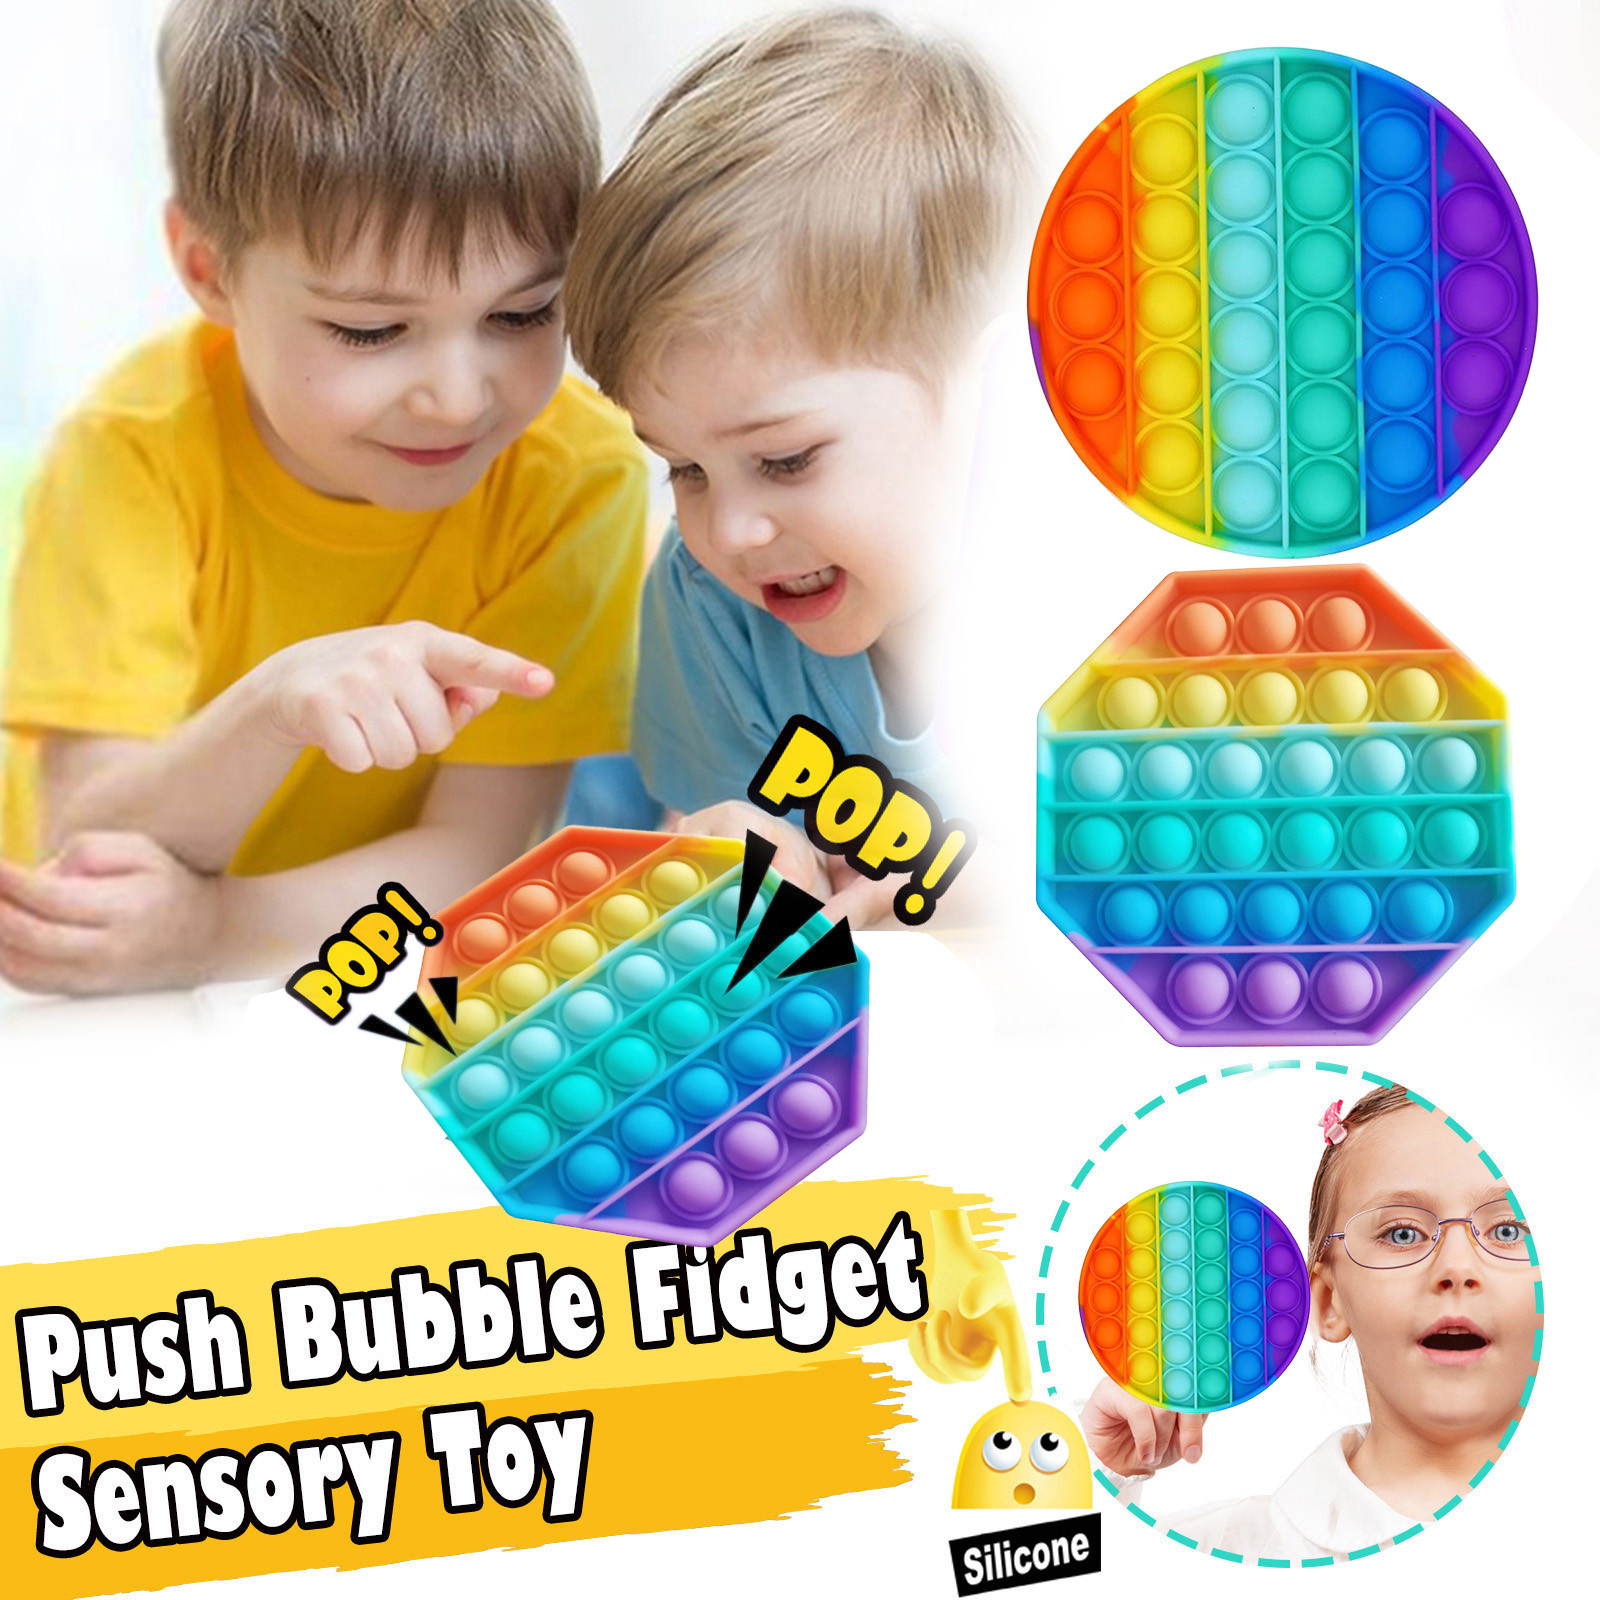 Fidget-Toys Pop It Anti-Stress Rainbow-Color Adults Children Stretchy-Strings Relief img3